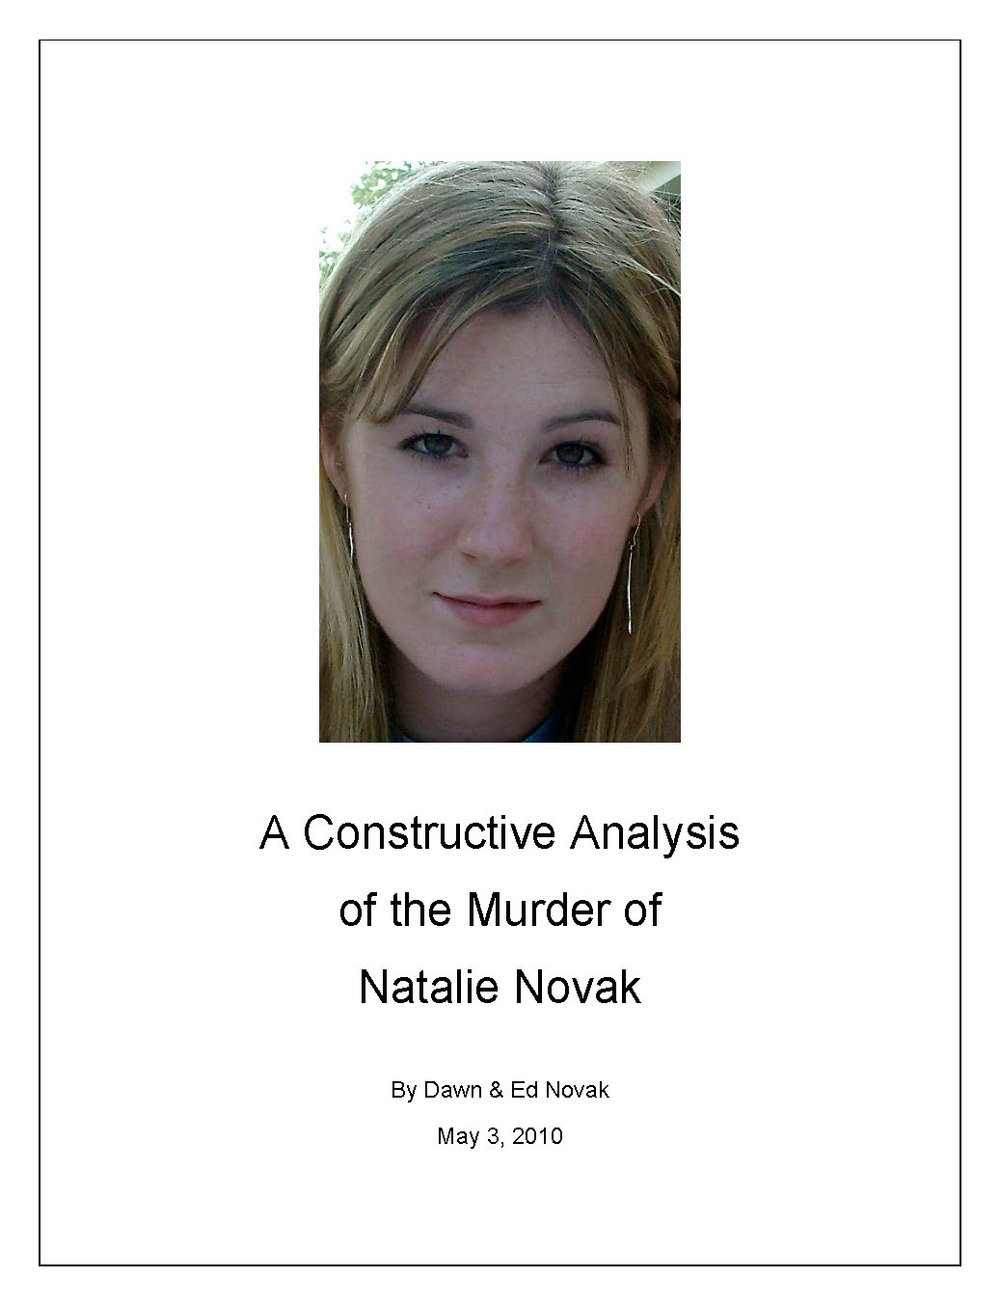 A Constructive Analysis of the Murder of Natalie Novak